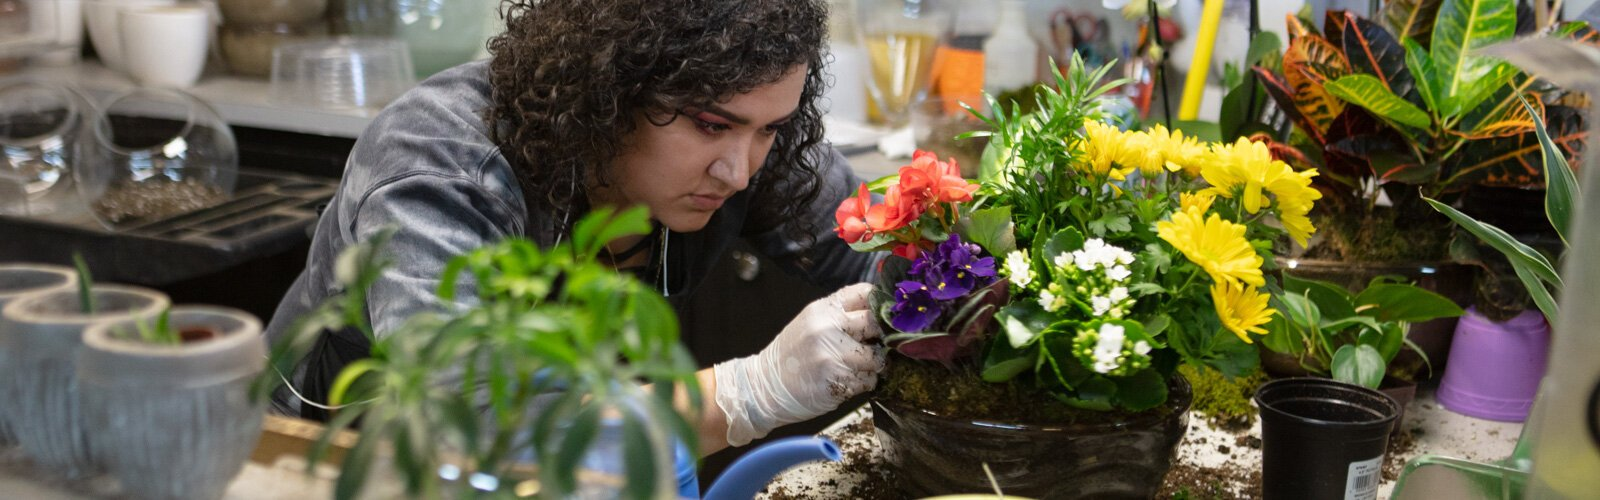 Preparing for spring, Cynthia Carmona plants flowers at Eastern Floral.